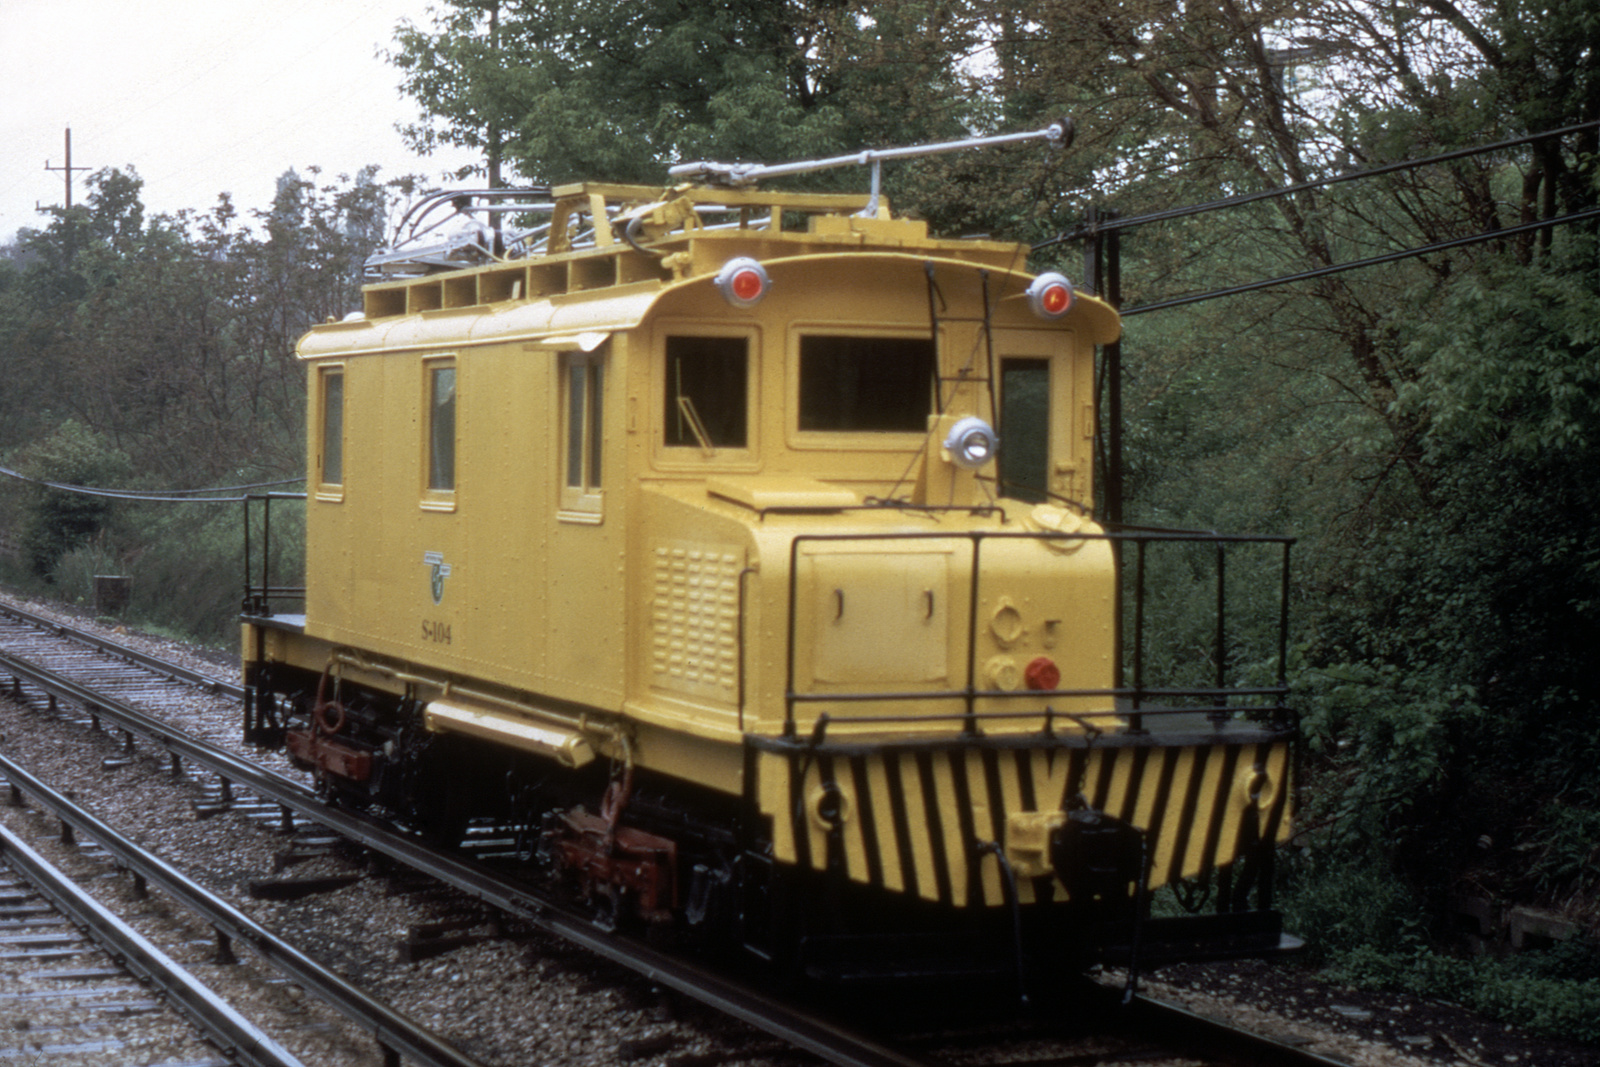 (489k, 1024x683)<br><b>Country:</b> United States<br><b>City:</b> Chicago, IL<br><b>System:</b> Chicago Transit Authority <br><b>Line:</b> CTA Yellow (Skokie)<br><b>Car:</b> CTA Work Cars S-104 <br><b>Collection of:</b> David Pirmann<br><b>Viewed (this week/total):</b> 2 / 436